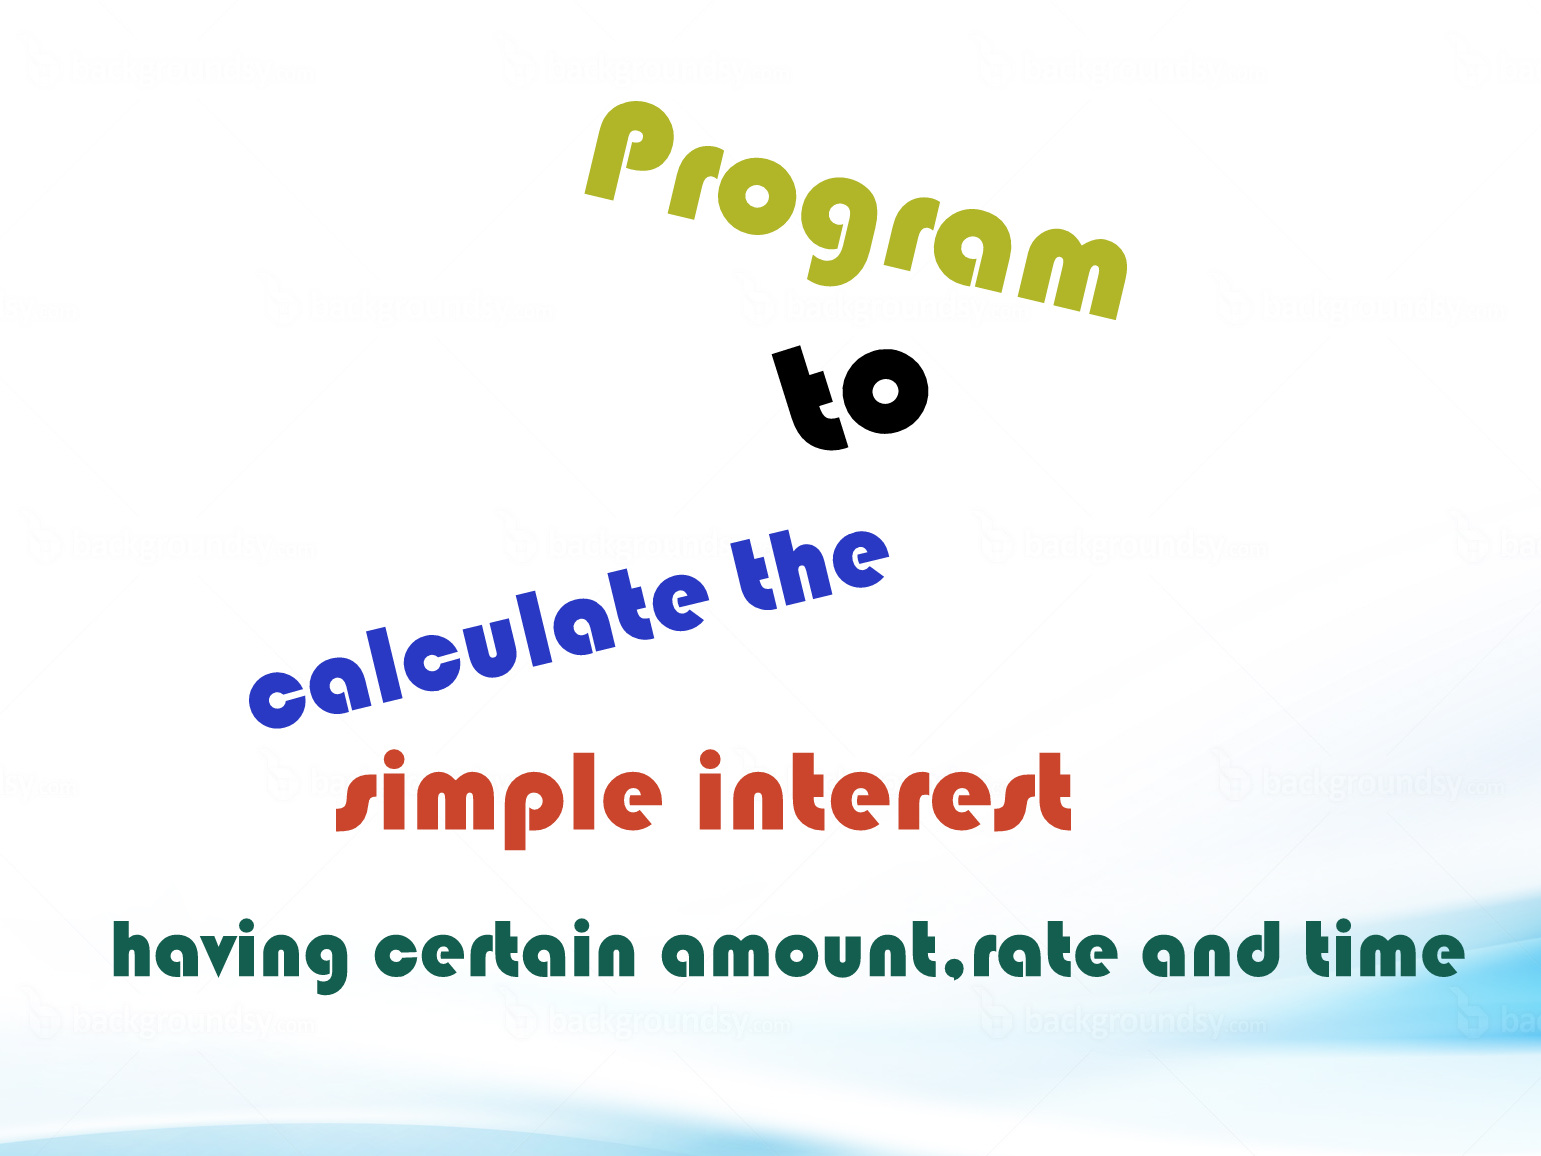 Program To Calculate The Simple Interest For A Given P4000t2 Yrs